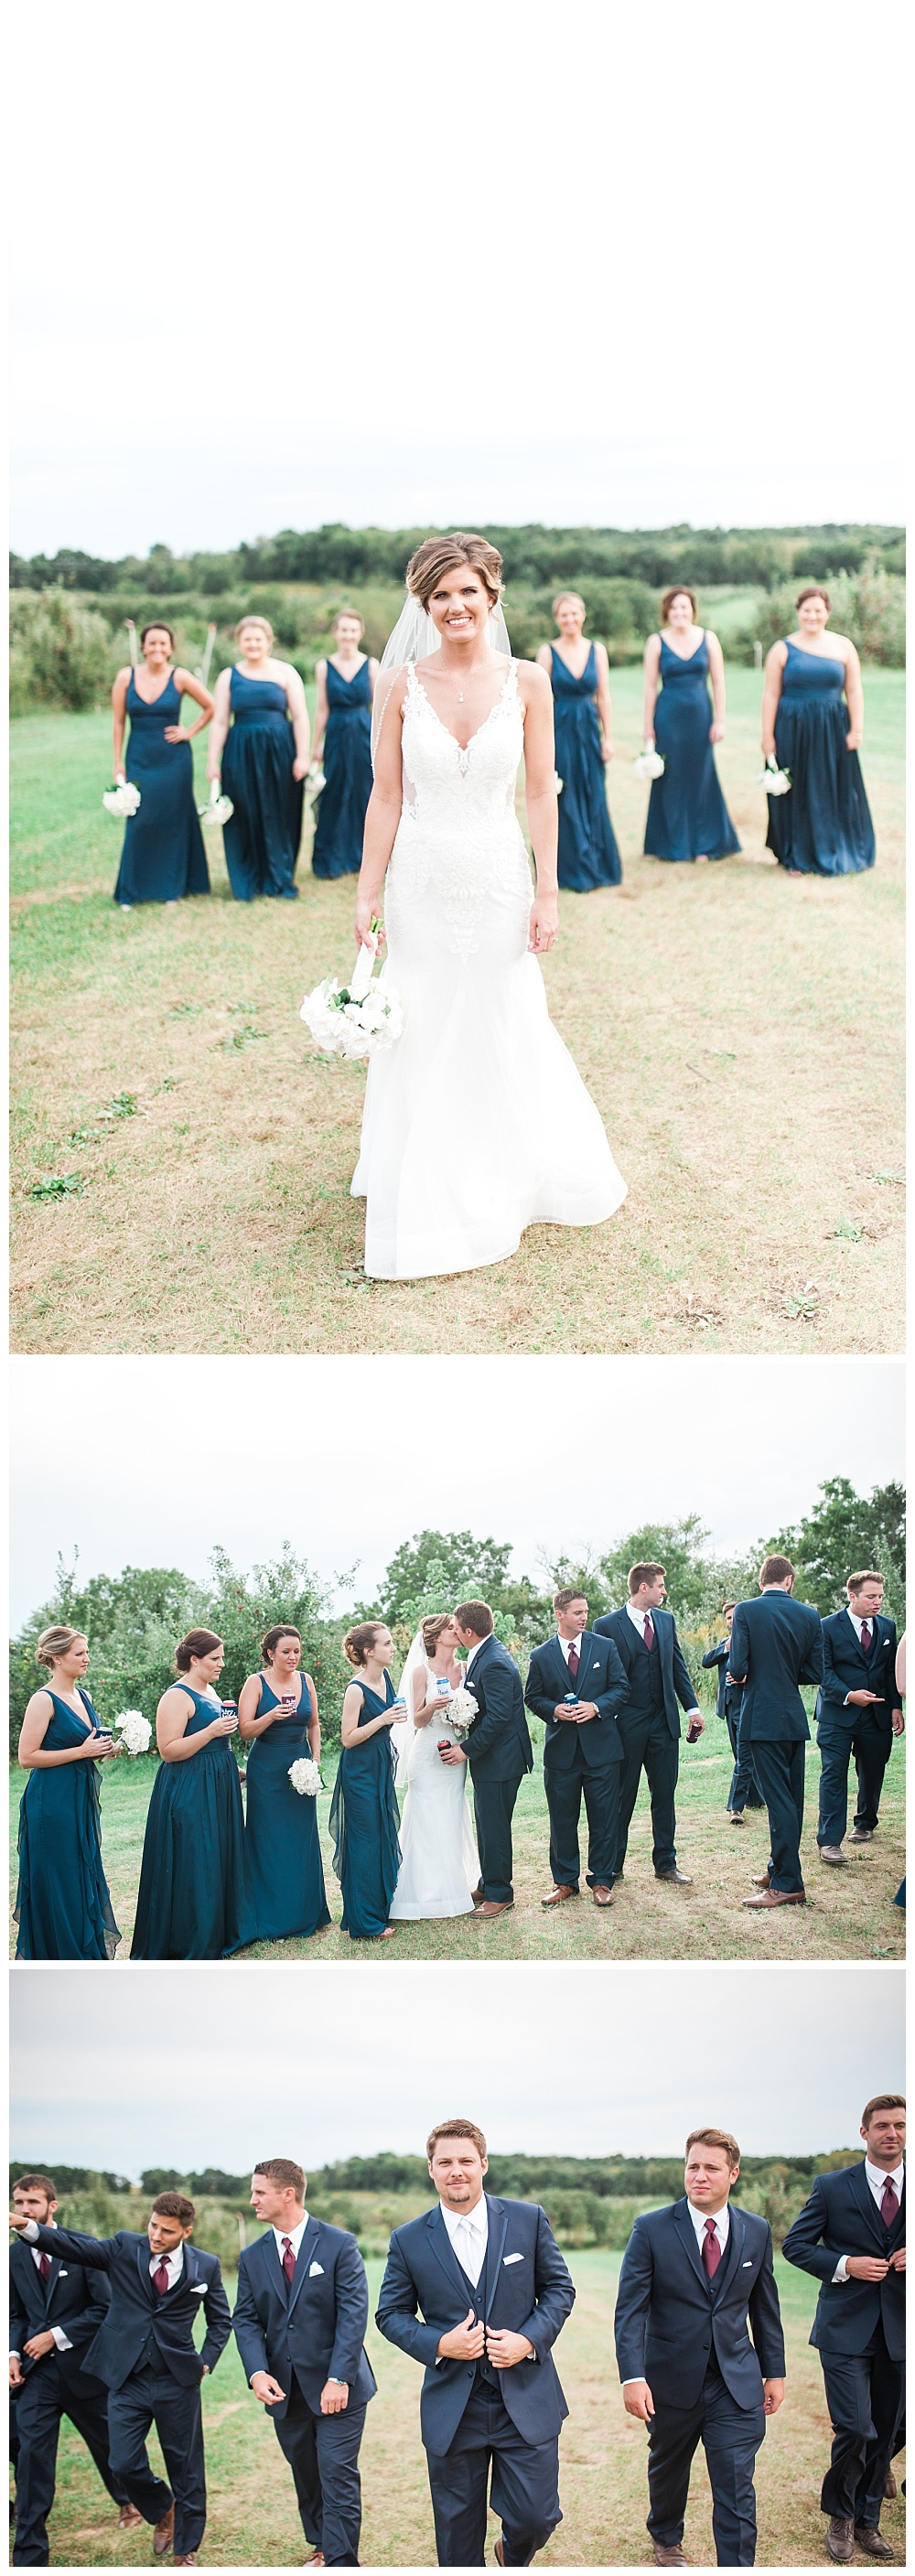 Stephanie Marie Photography Celebration Farm Timber Dome Solon Iowa City Wedding Photographer Michal Sammy 18